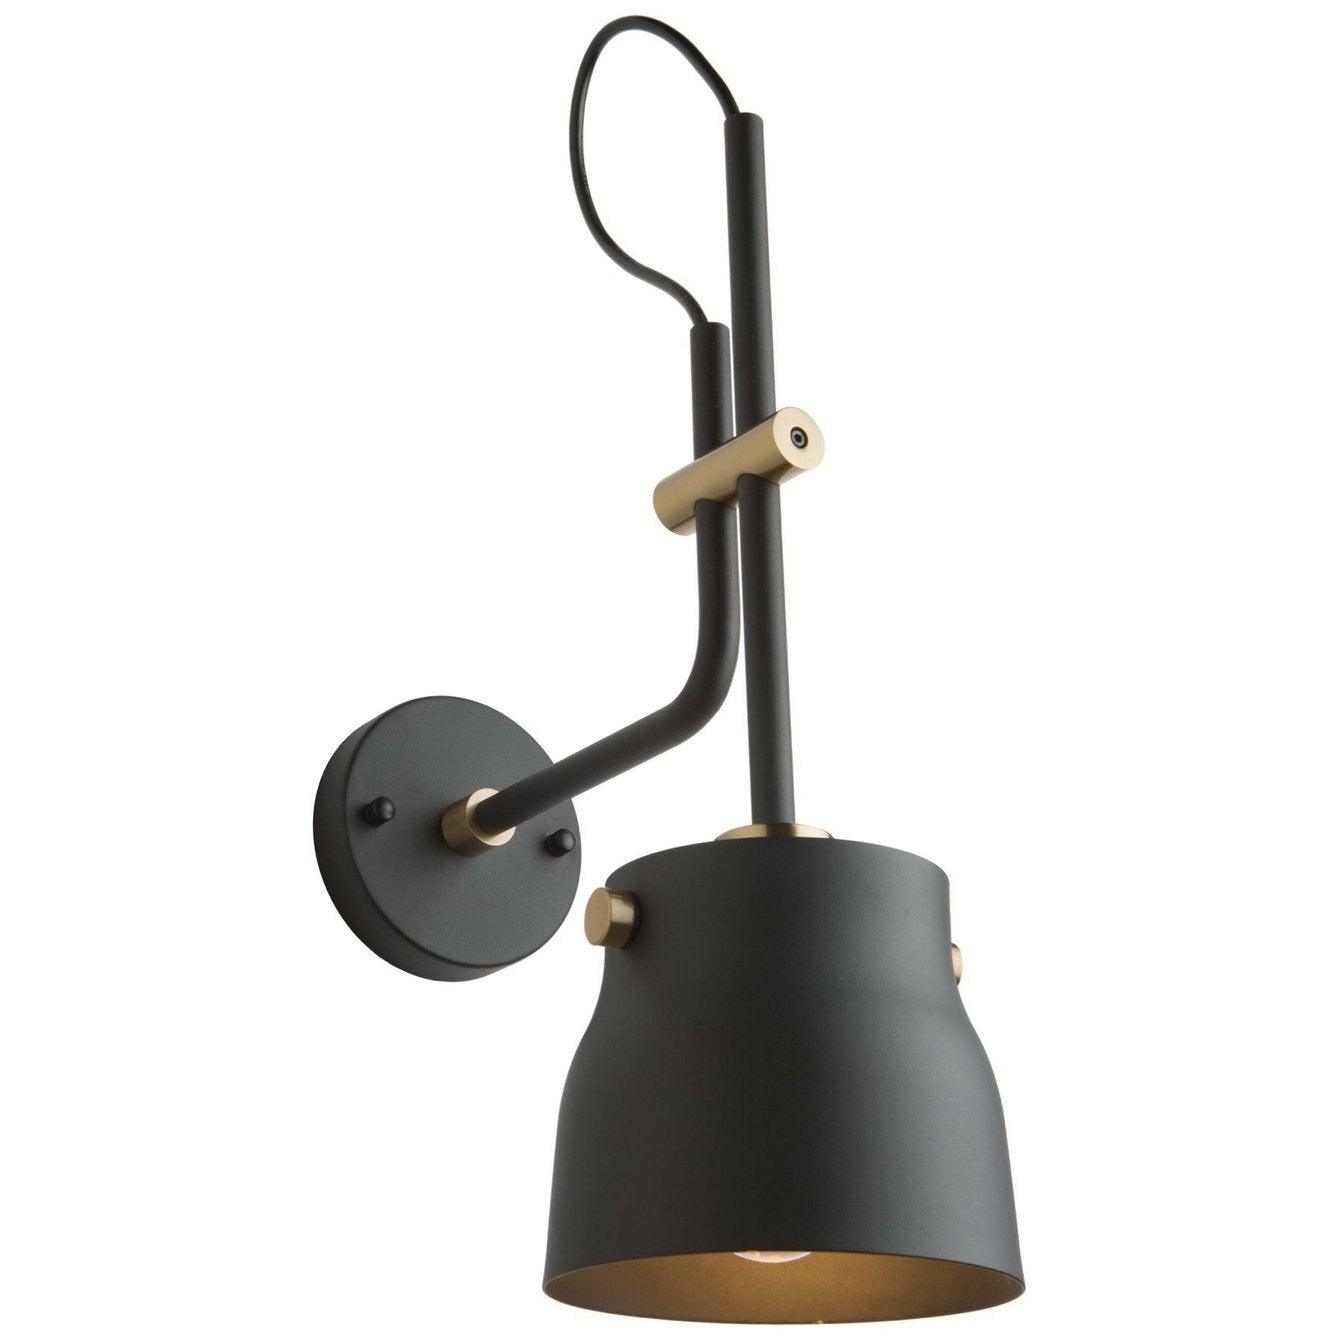 Artcraft Lighting - AC11367VB - One Light Wall Sconce - Euro Industrial - Matte Black & Harvest Brass